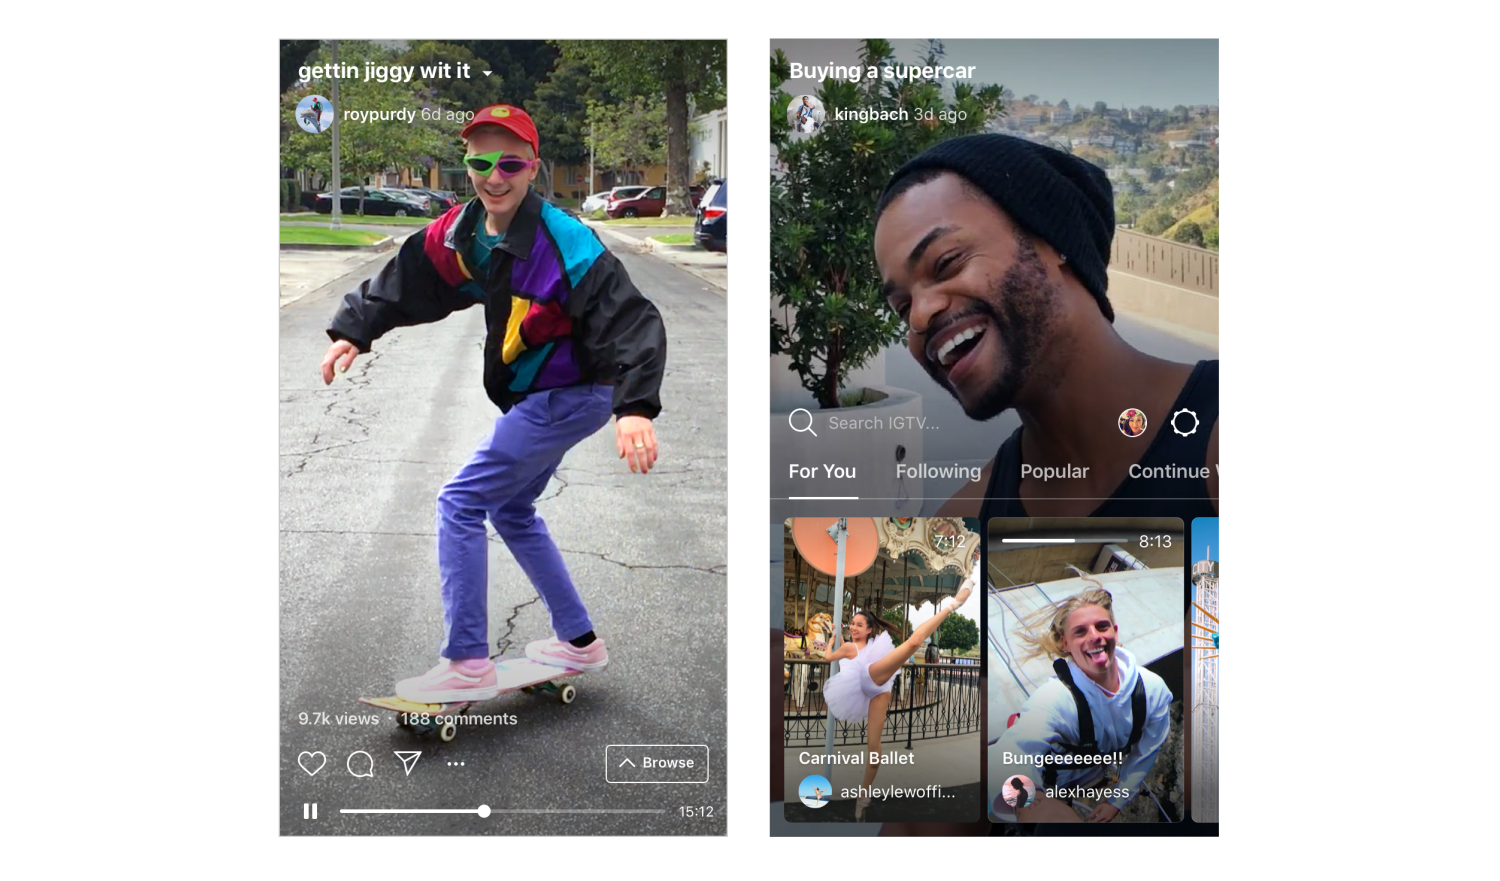 It's Official: Instagram Just Became Facebook's 4th Billion-User Platform